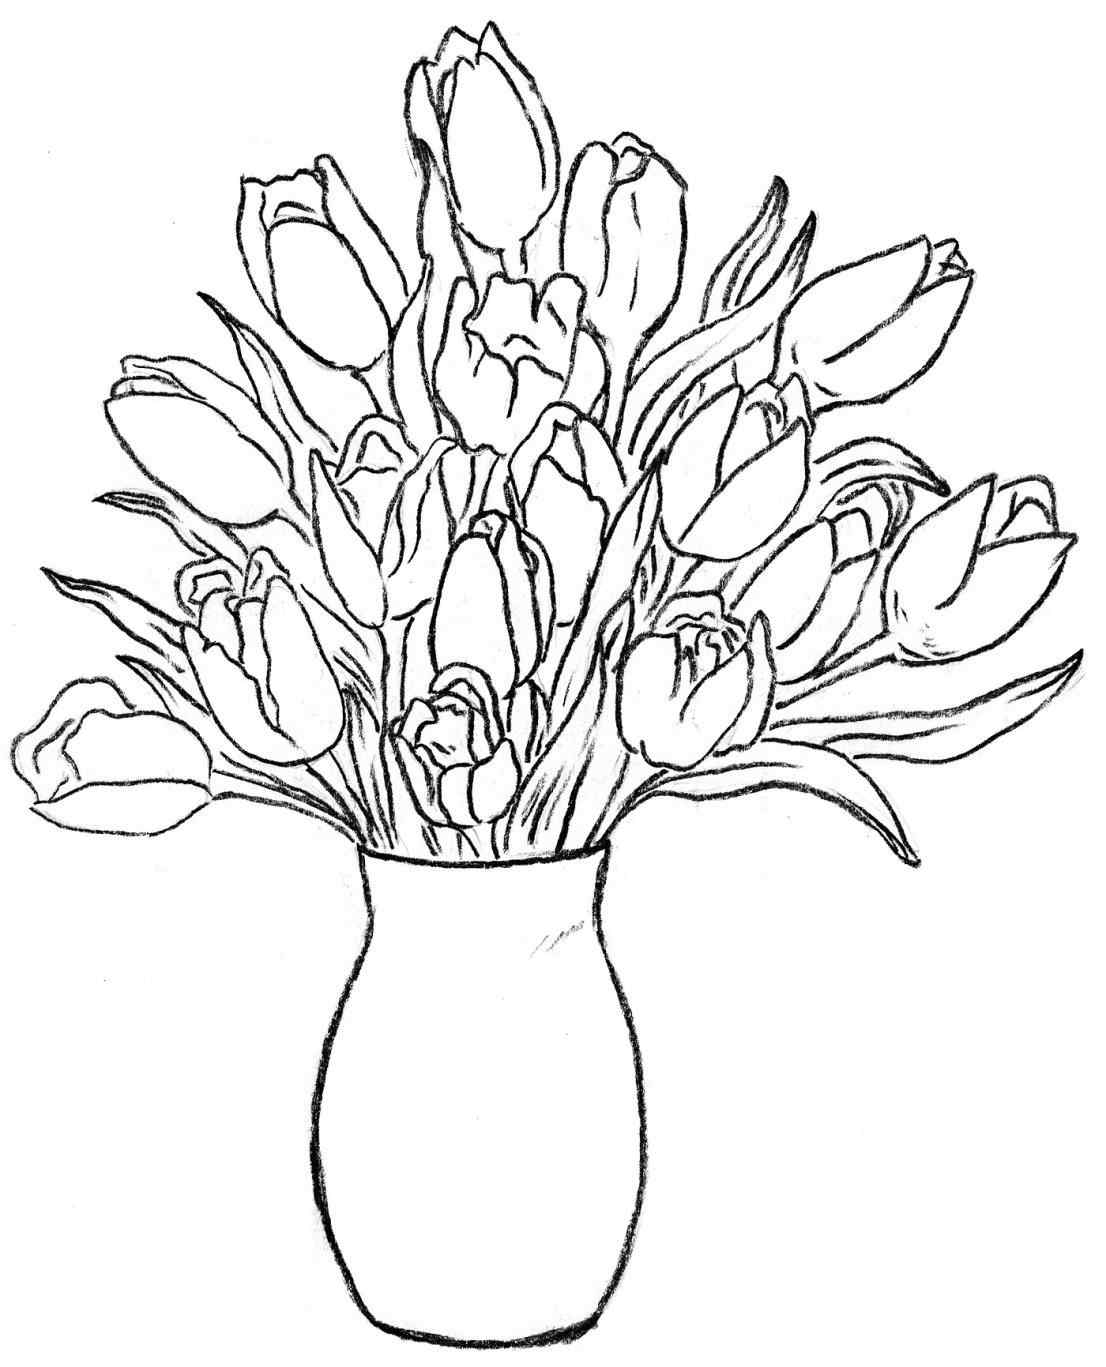 1106x1367 Drawings Of Roses In A Vase Your Meme Source